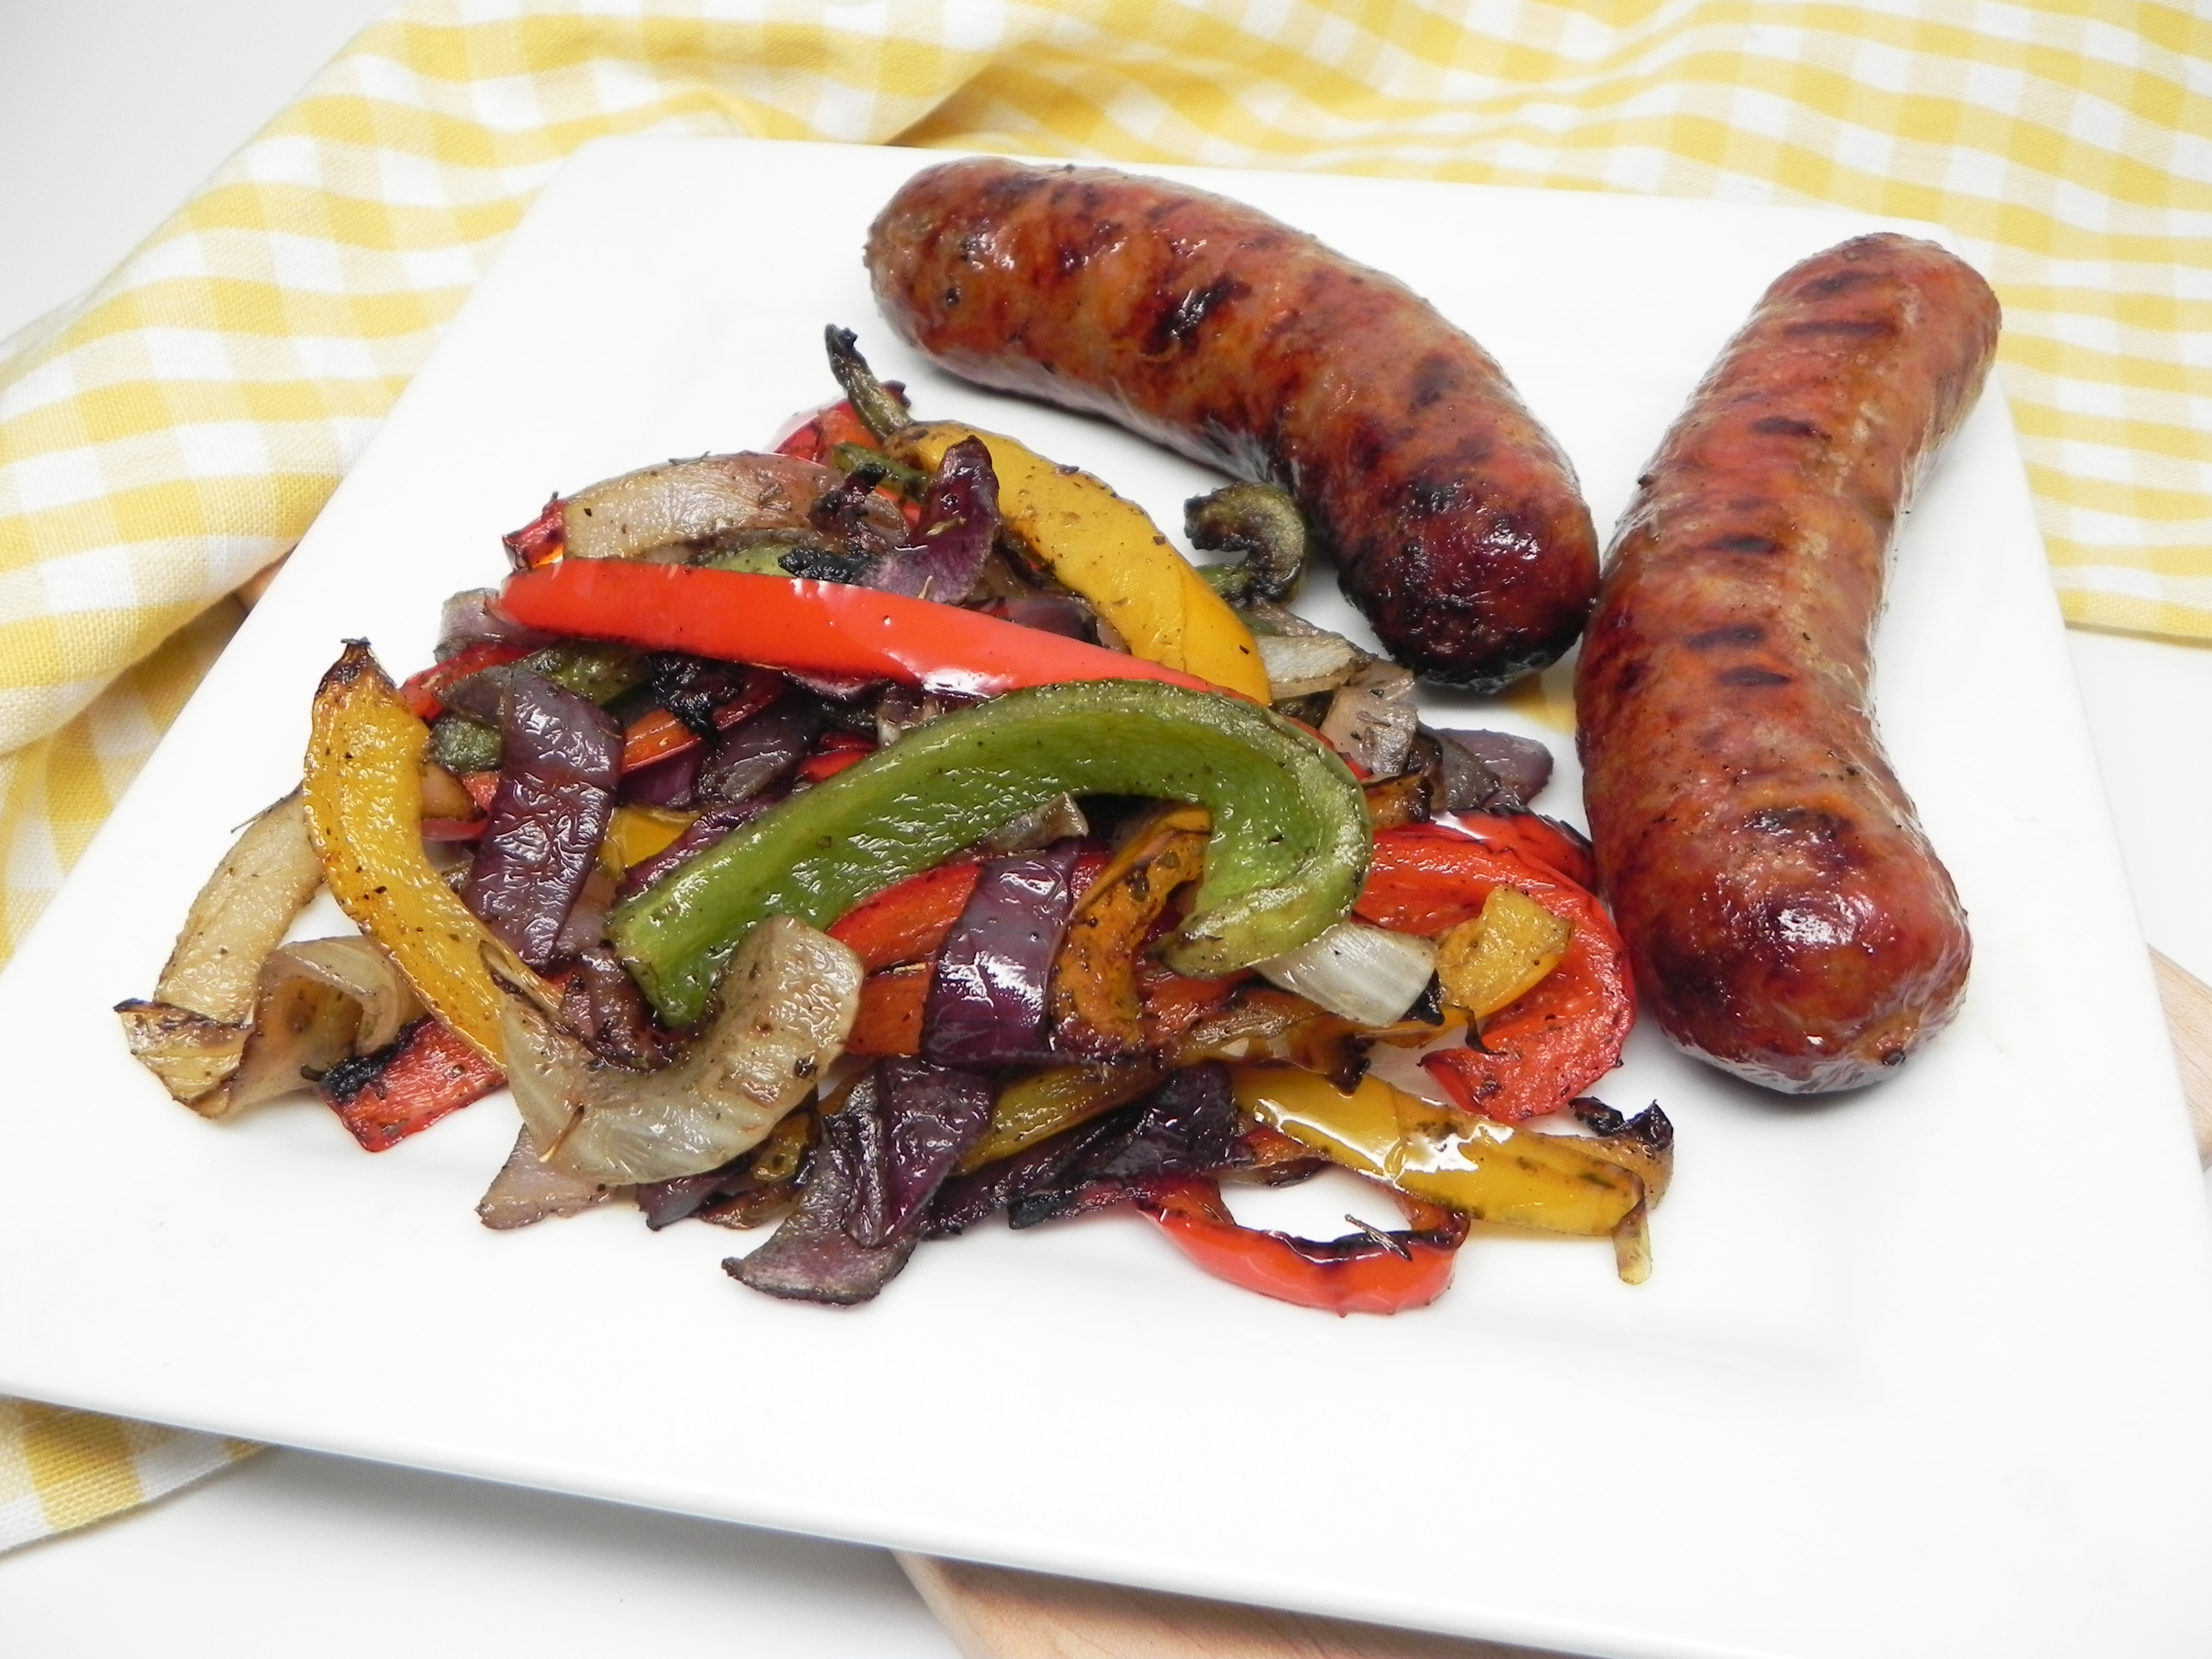 Grilled Italian Sausage with Peppers and Onions image